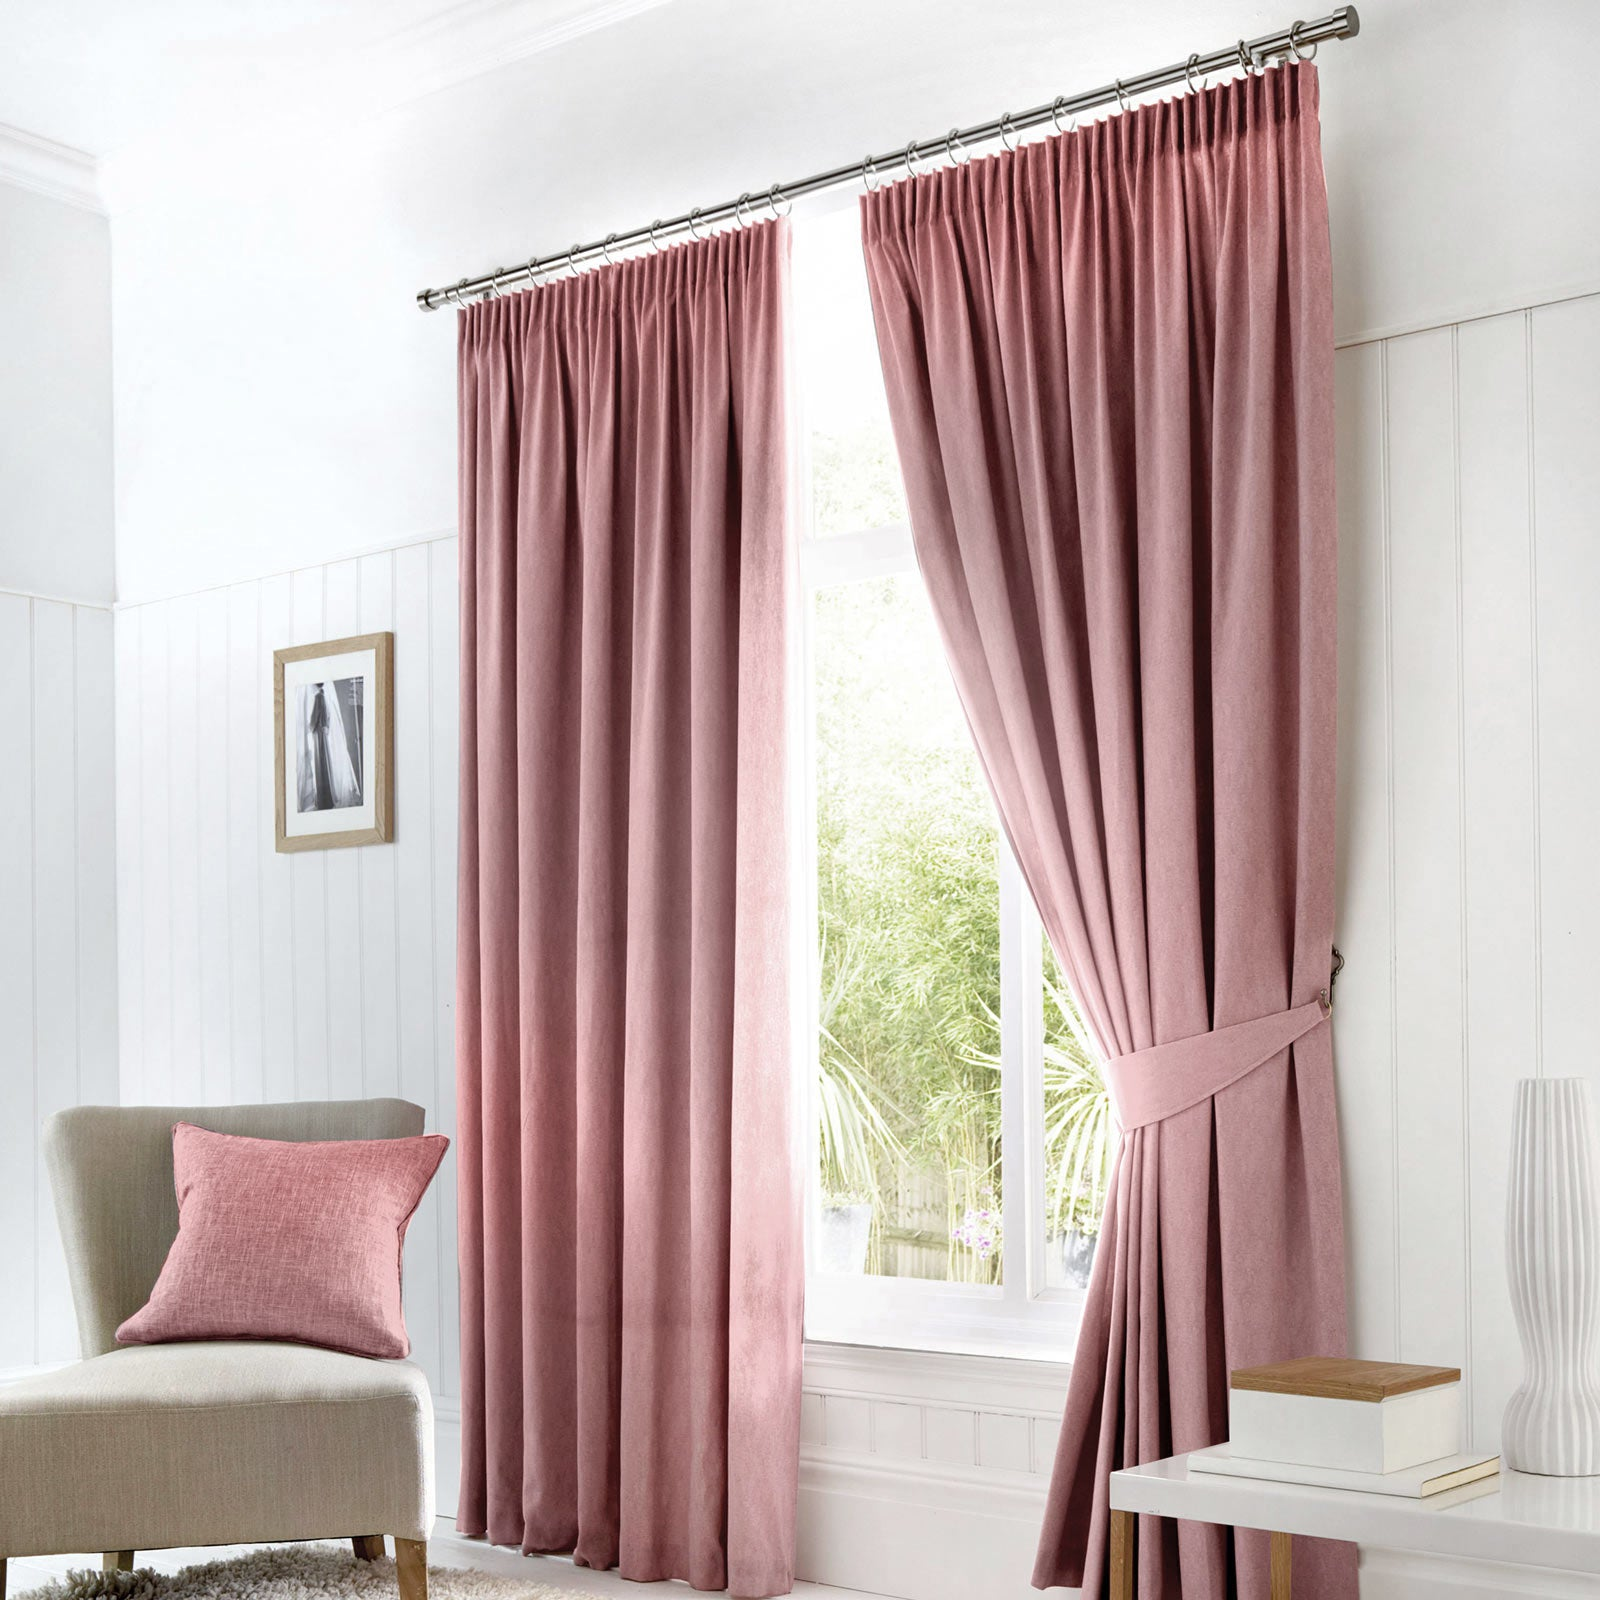 Dijon Blackout Thermal Tape Top Curtains Blush Pink - 46'' x 54'' - Ideal Textiles